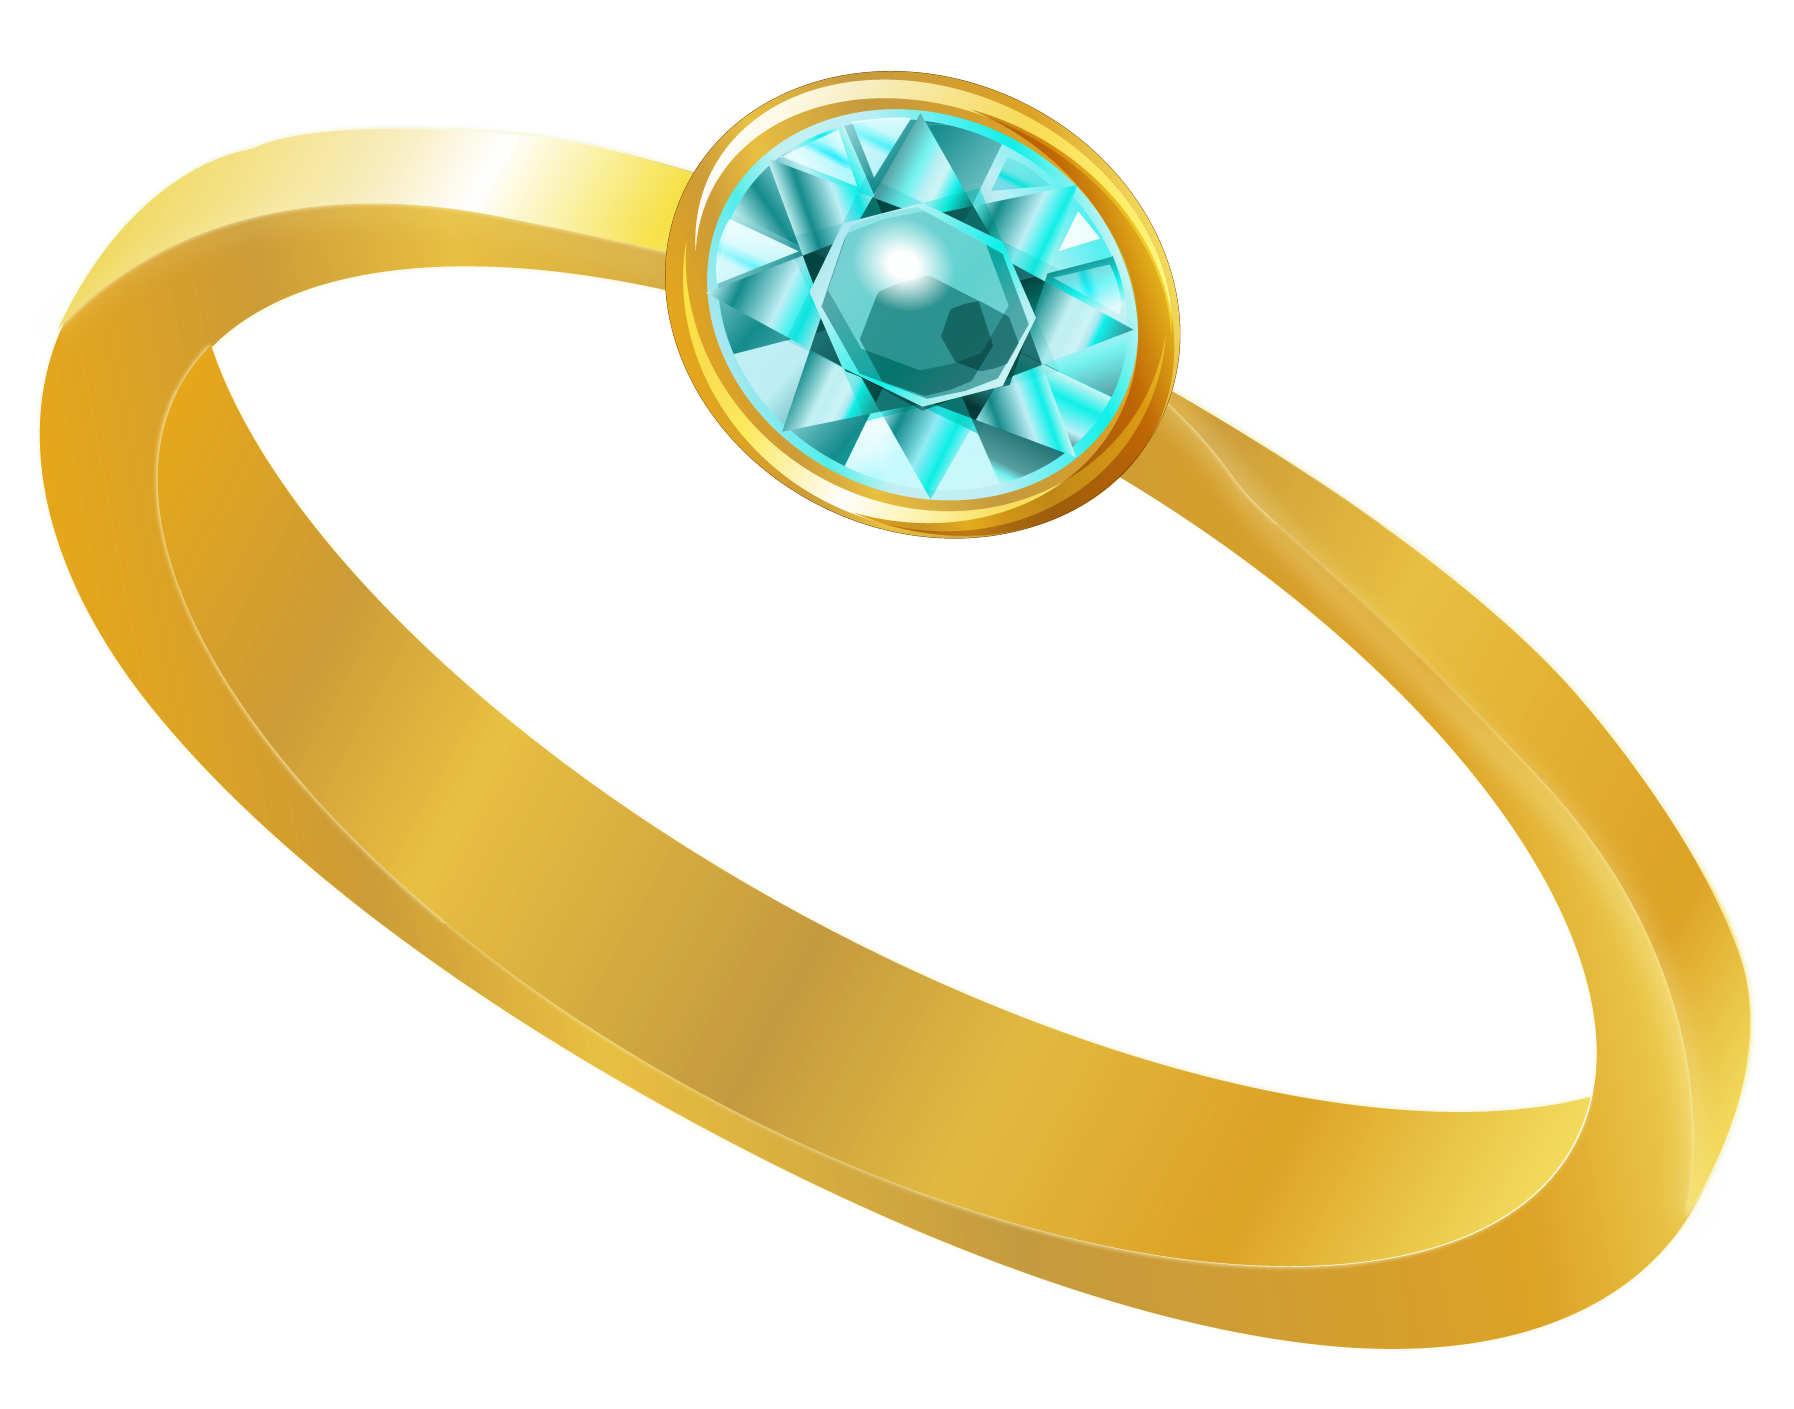 Jewelry PNG images free download, ring PNG, earnings PNG.